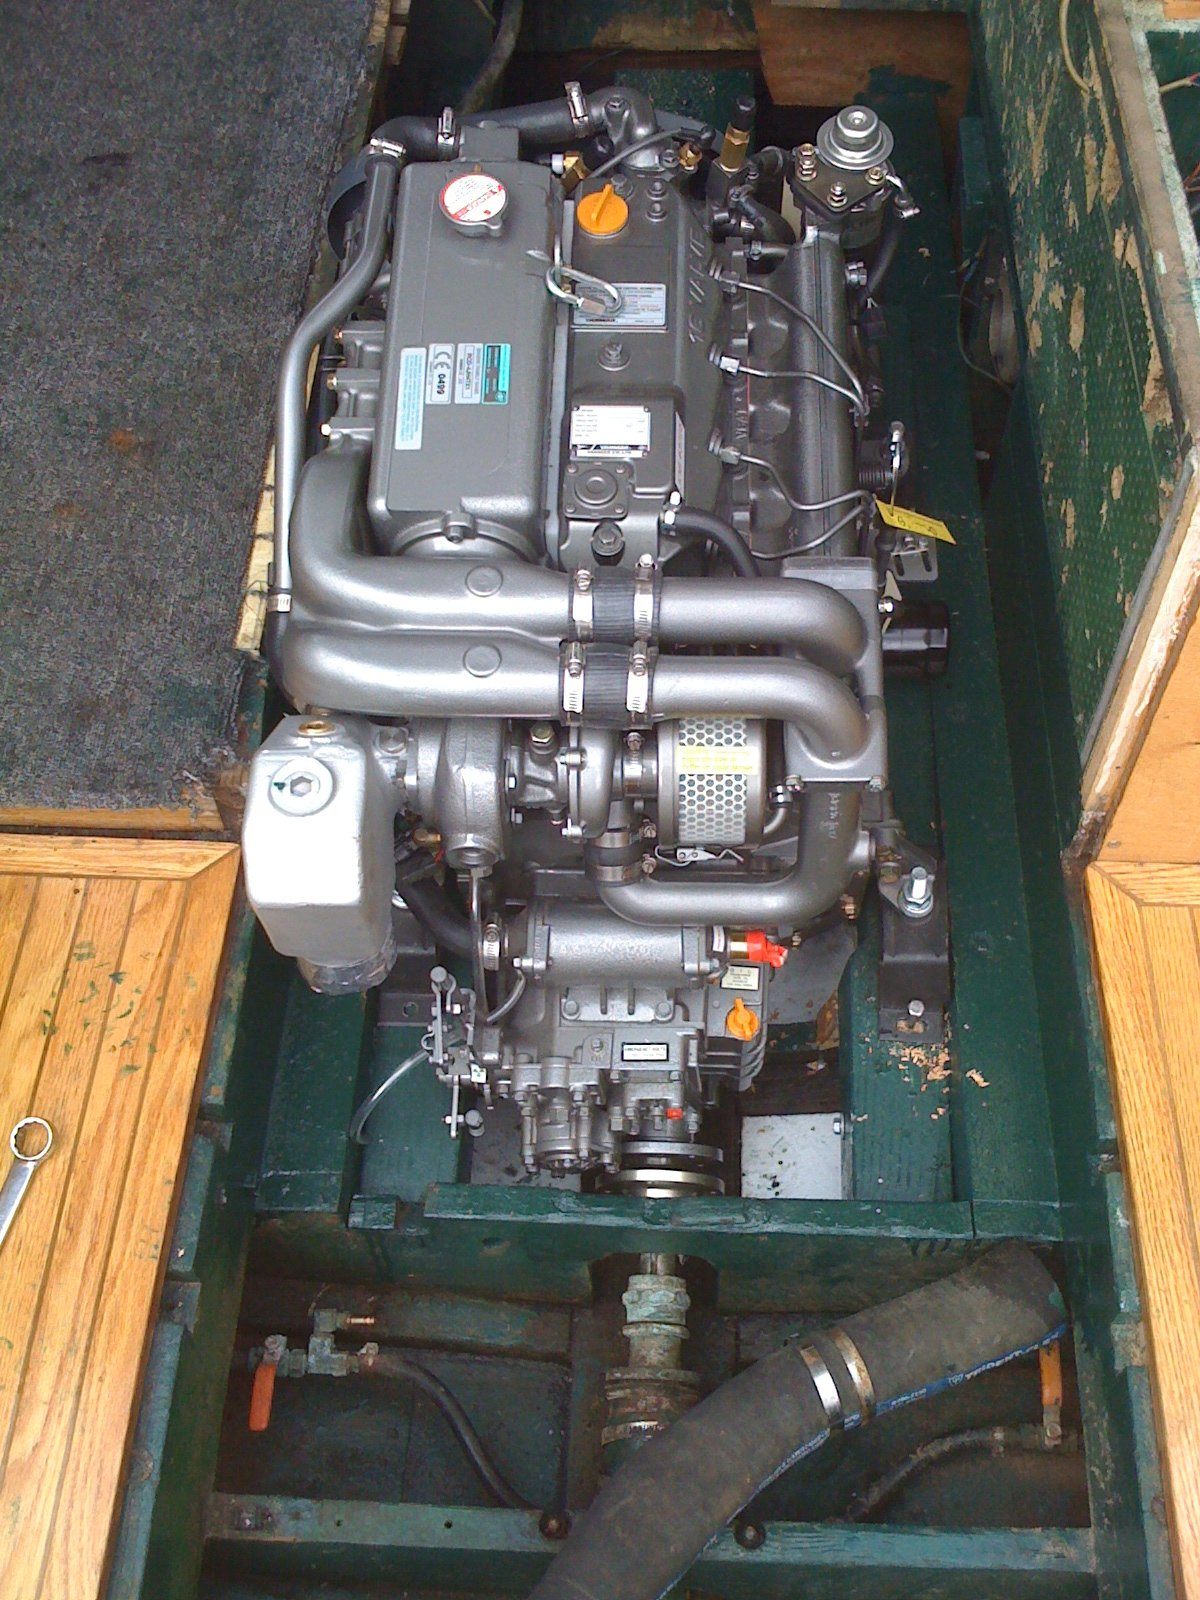 New Yanmar 110HP turbocharged 4 cylinder diesel and gear, new prop, new exhaust system. Twin 30 gal. diesel tanks with new top-feed plumbing. Dual Racor filters. 80 hours on engine since new.